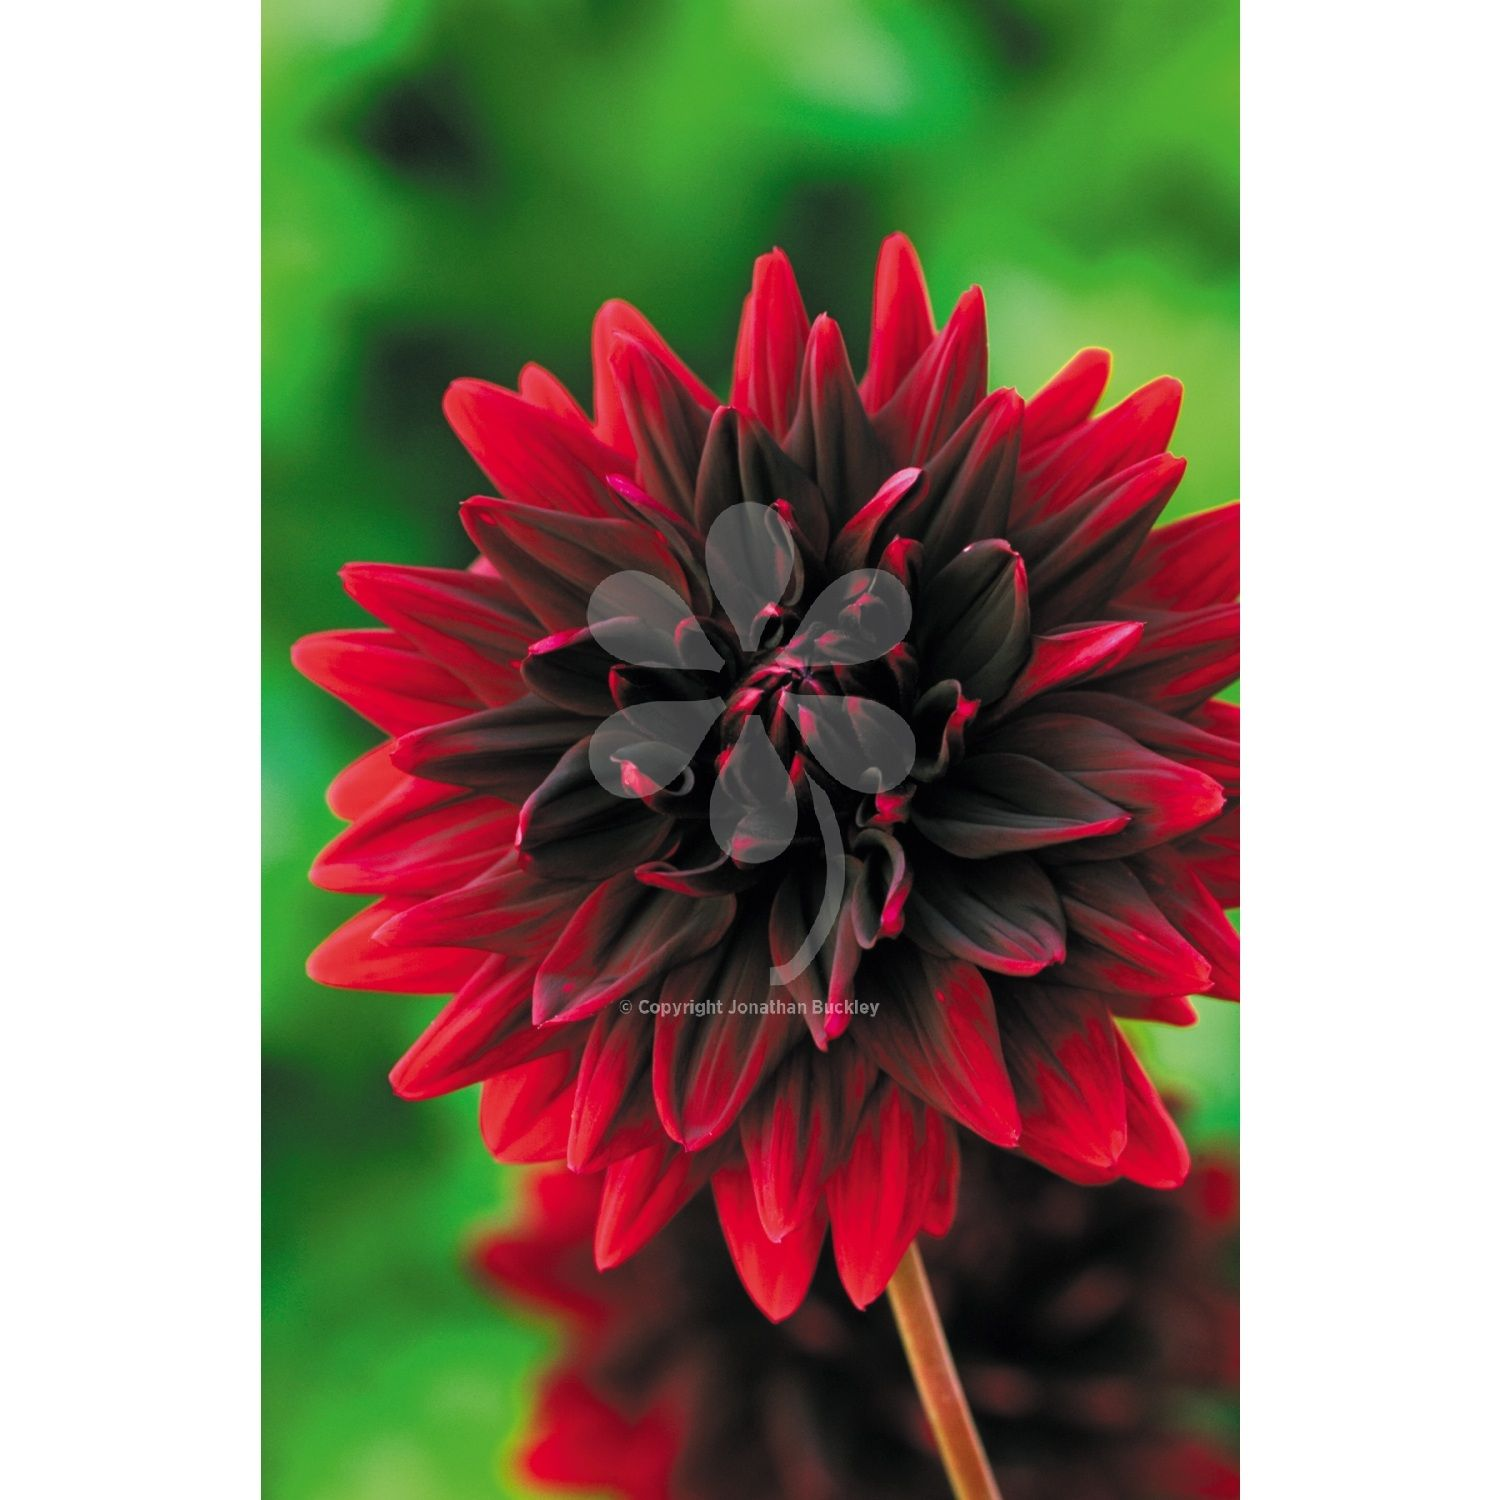 Dahlia sam hopkins in 2018 border pinterest dahlia flowers could be cut from black velvet and even fully open it hardly fades marvellous a first class dahlia flower izmirmasajfo